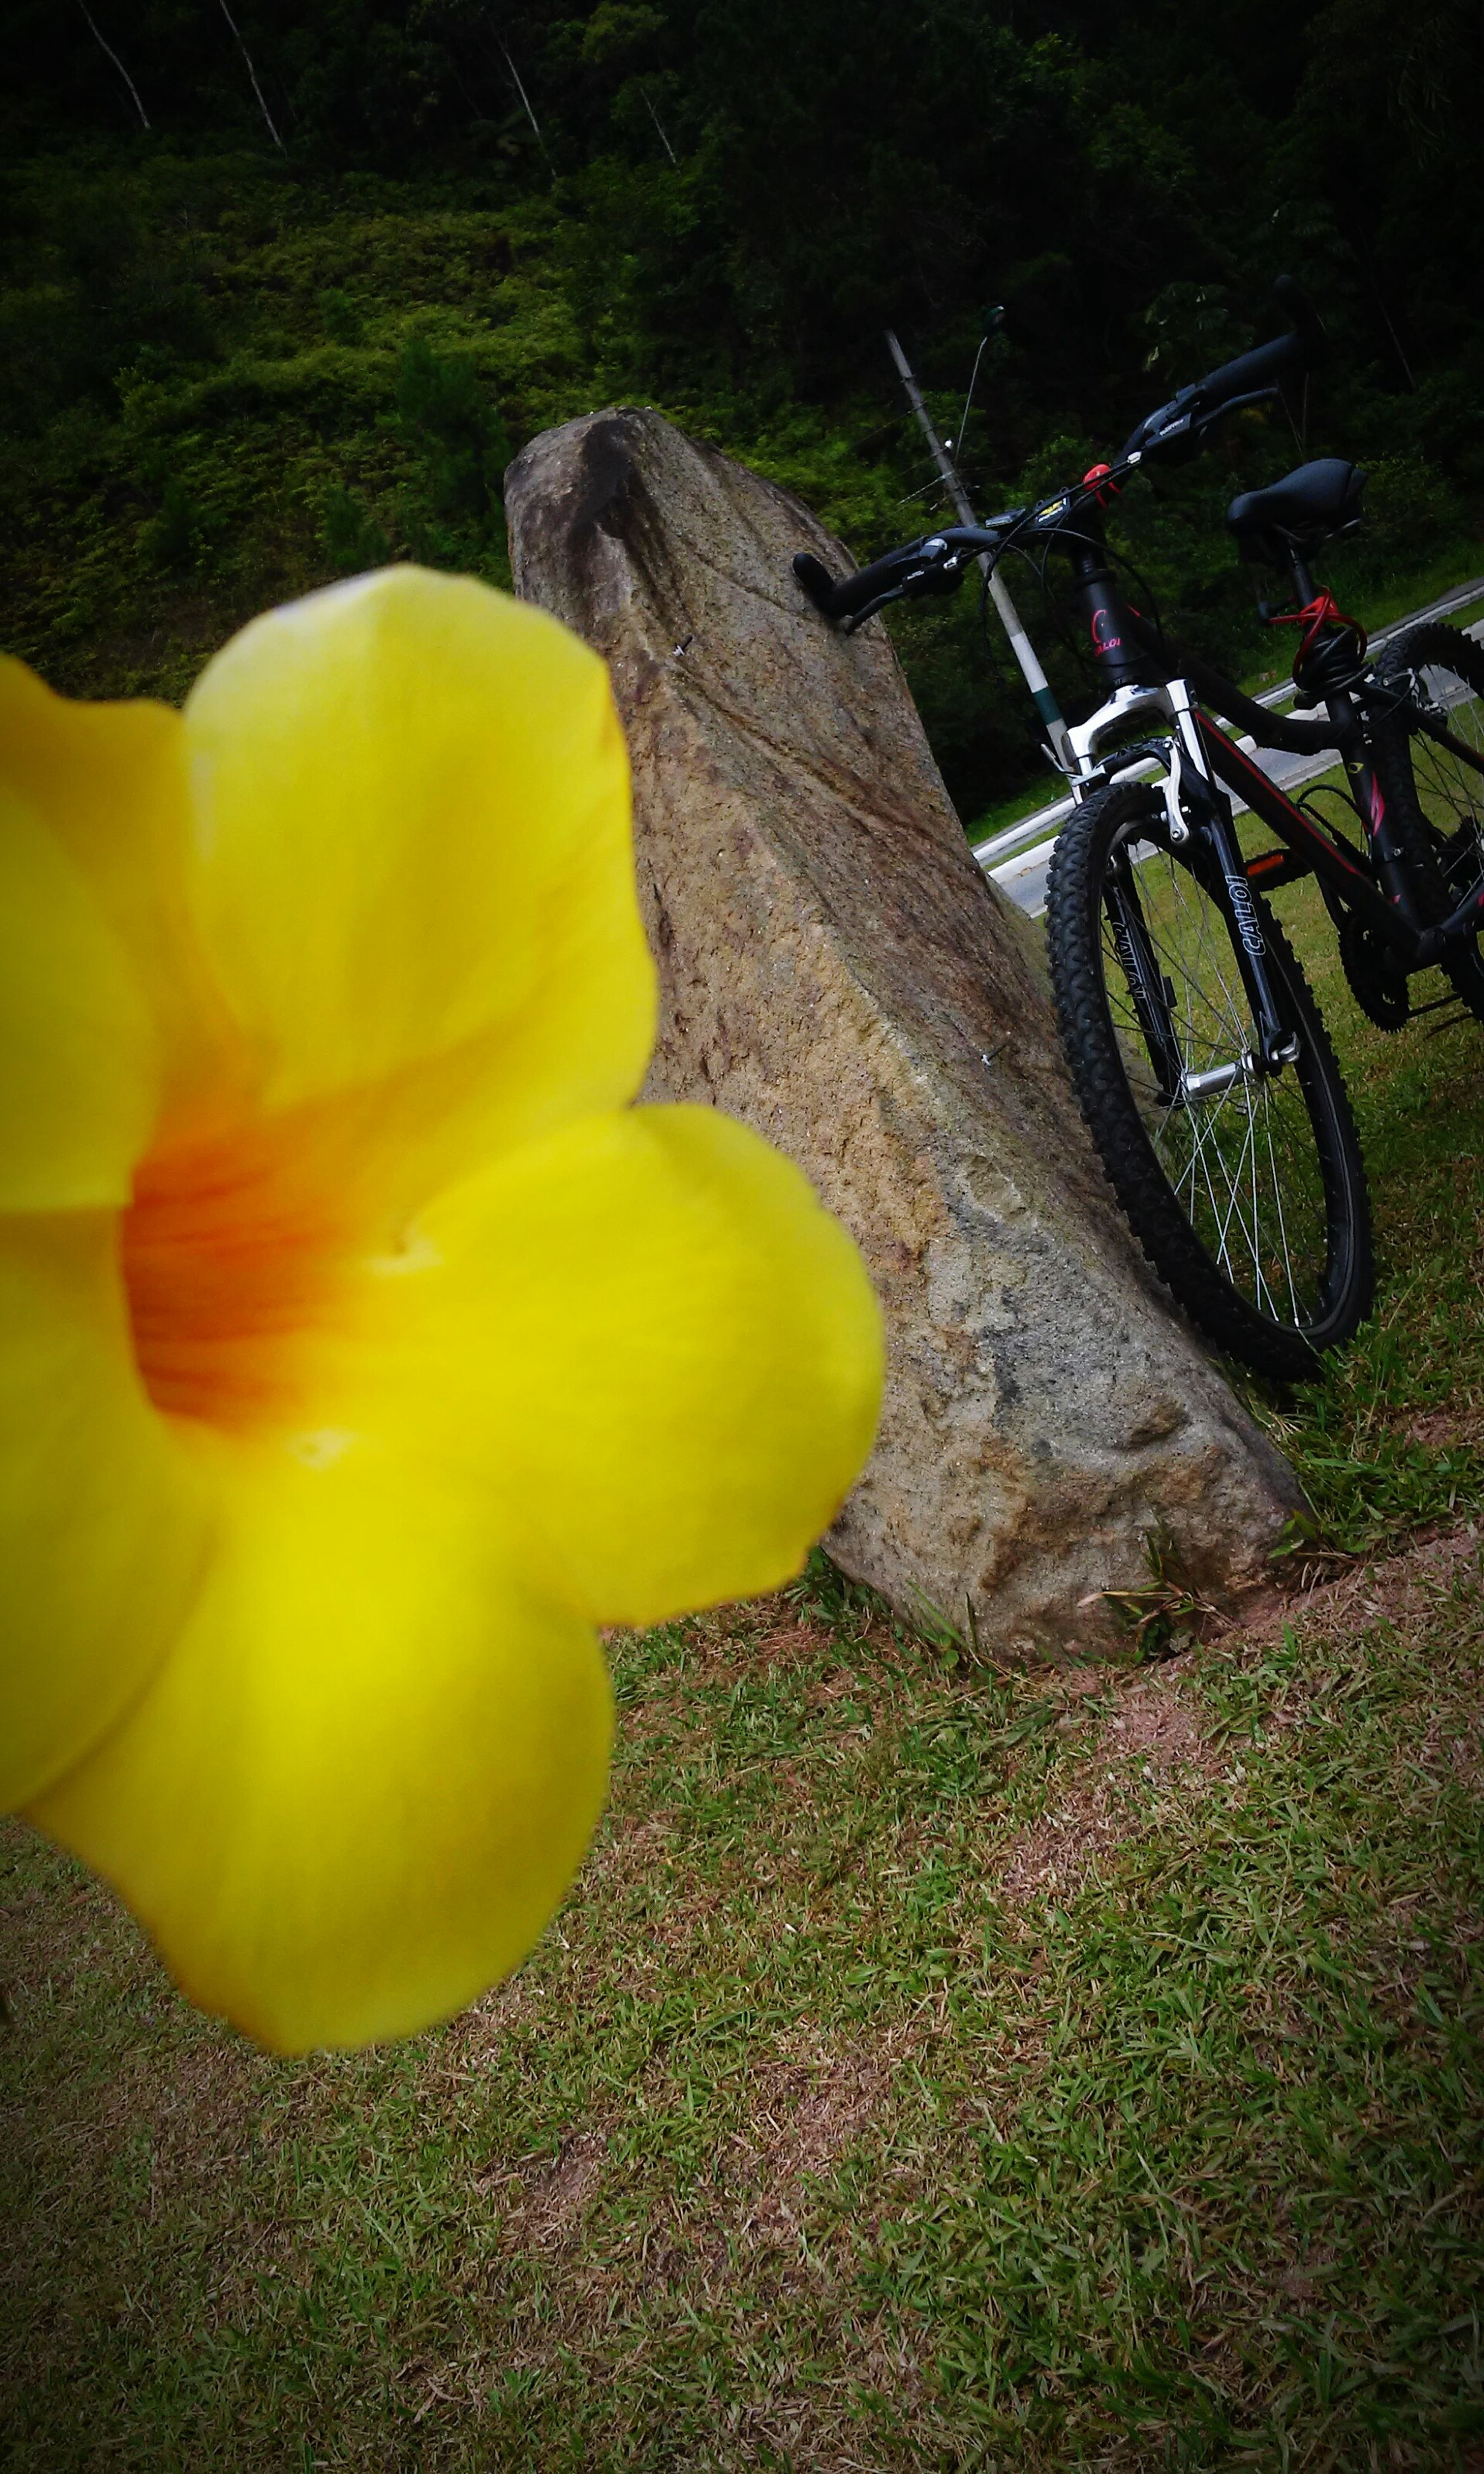 yellow, bicycle, flower, high angle view, plant, sunlight, nature, growth, outdoors, transportation, day, no people, close-up, petal, fragility, park - man made space, beauty in nature, land vehicle, shadow, mode of transport